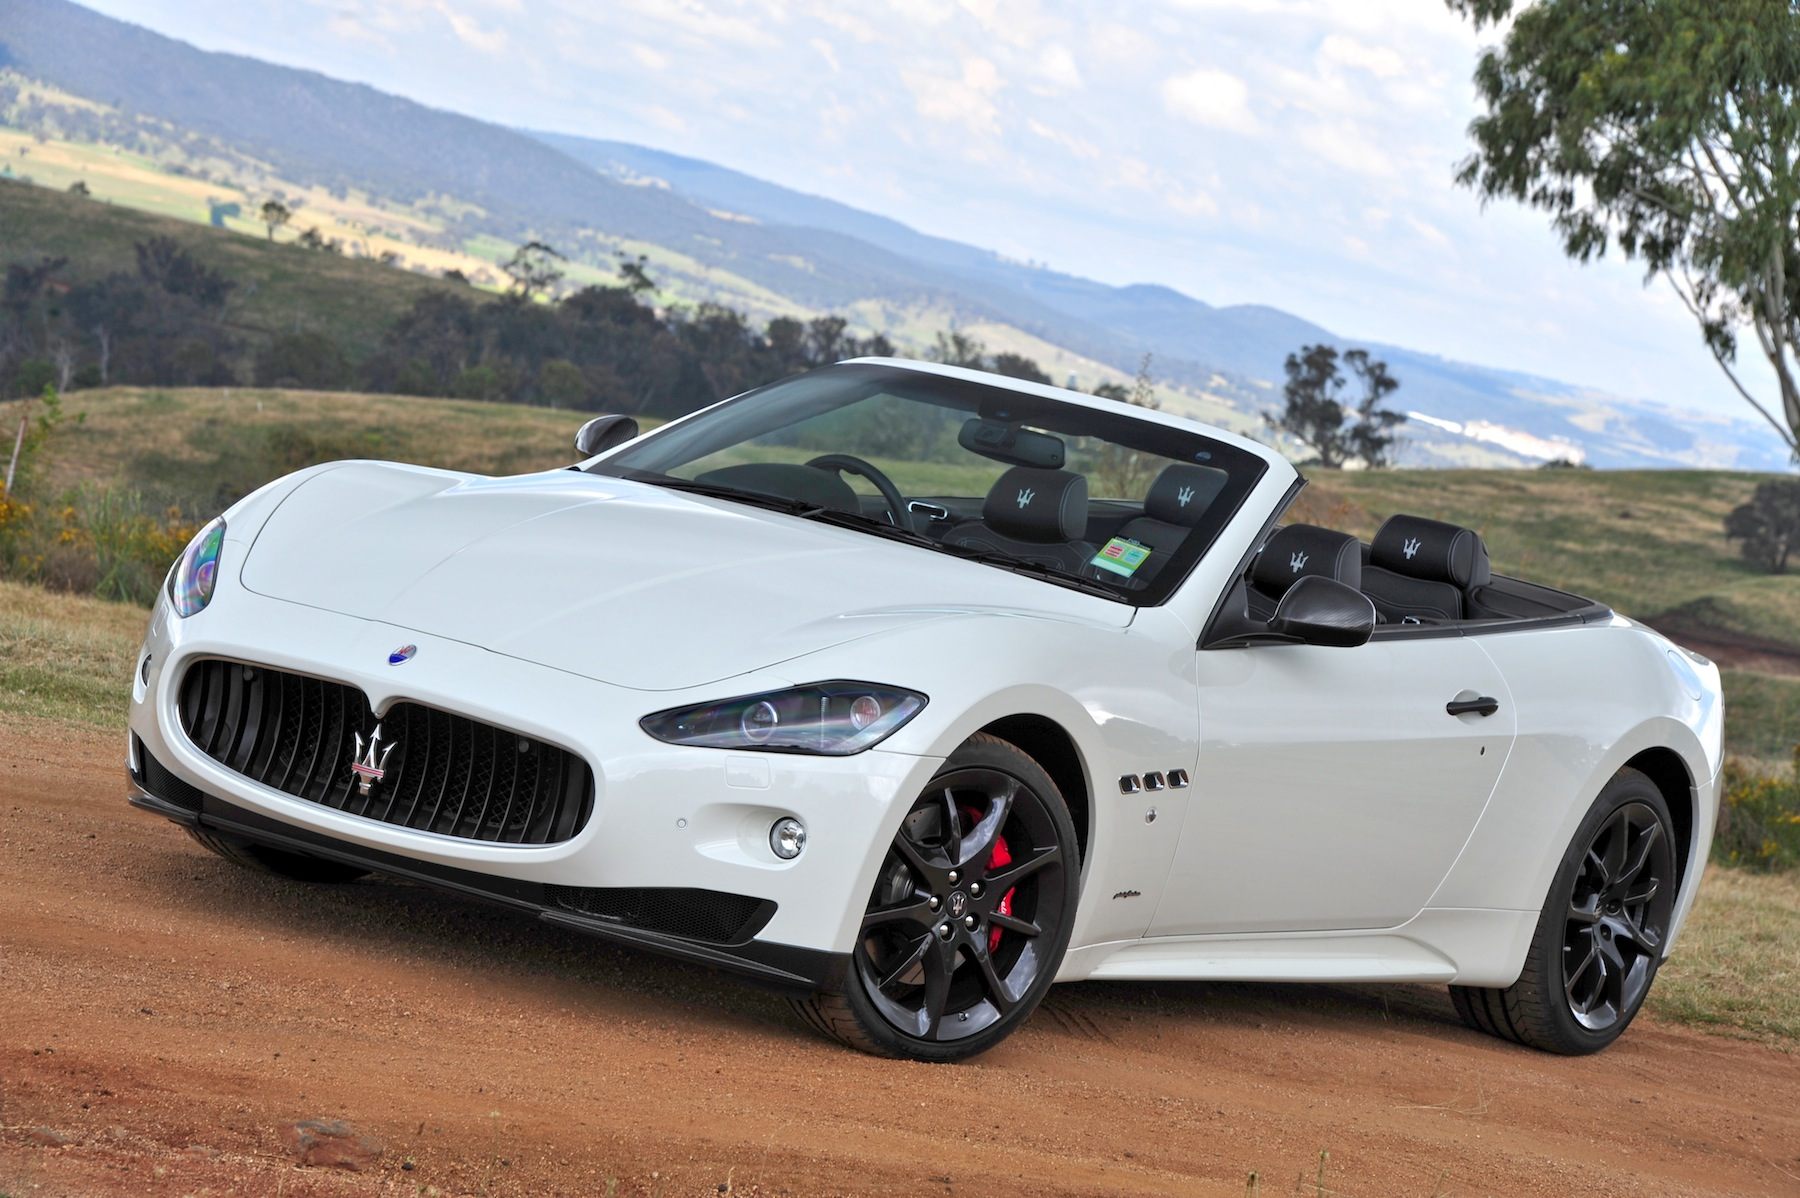 Maserati Grancabrio Specs Photos Videos And More On